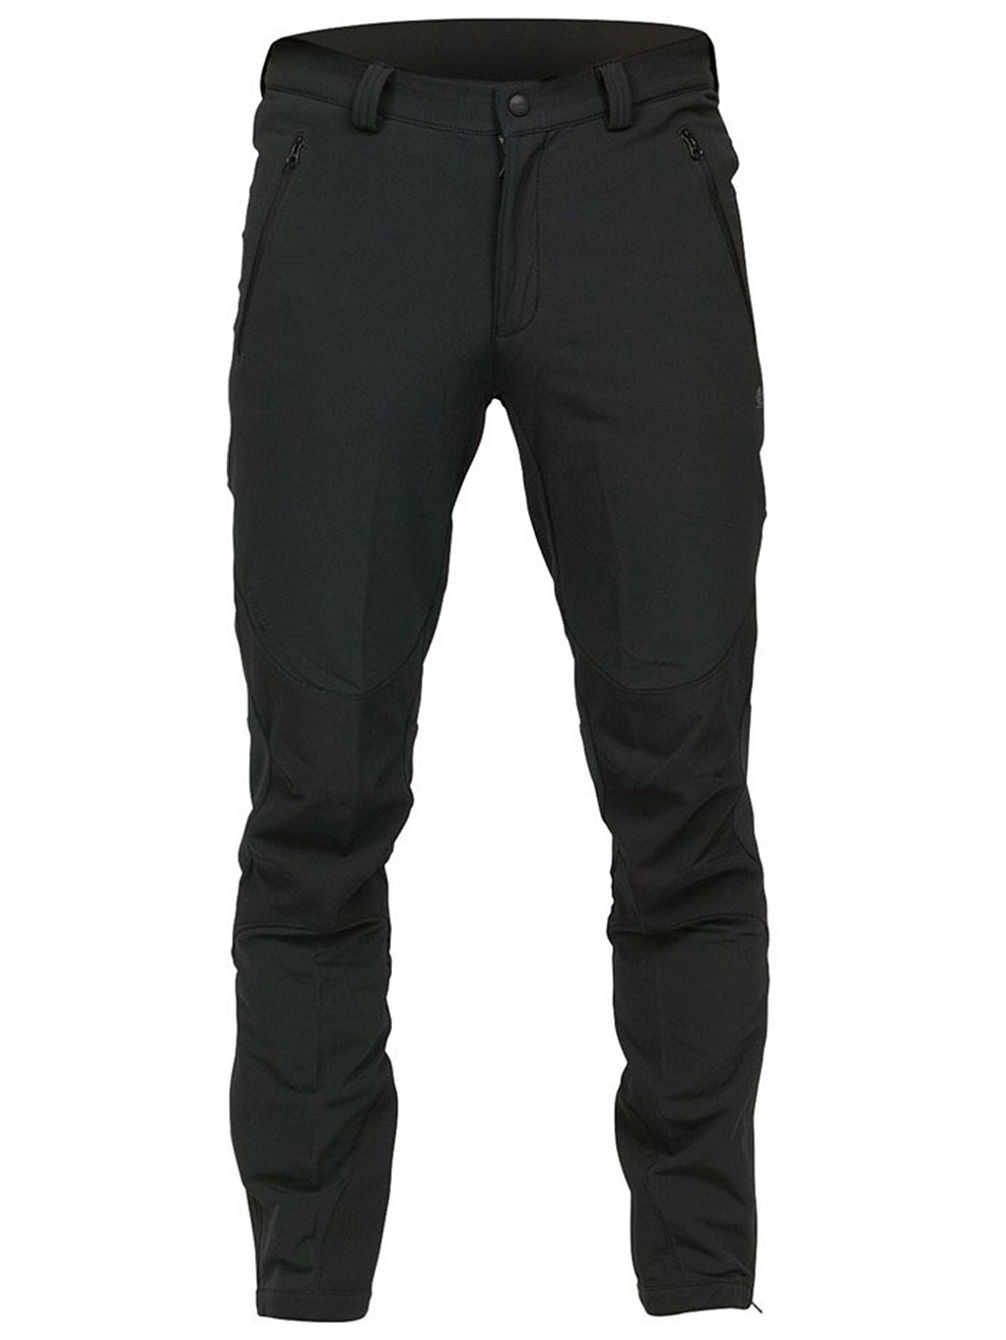 Geita Outdoor Pants